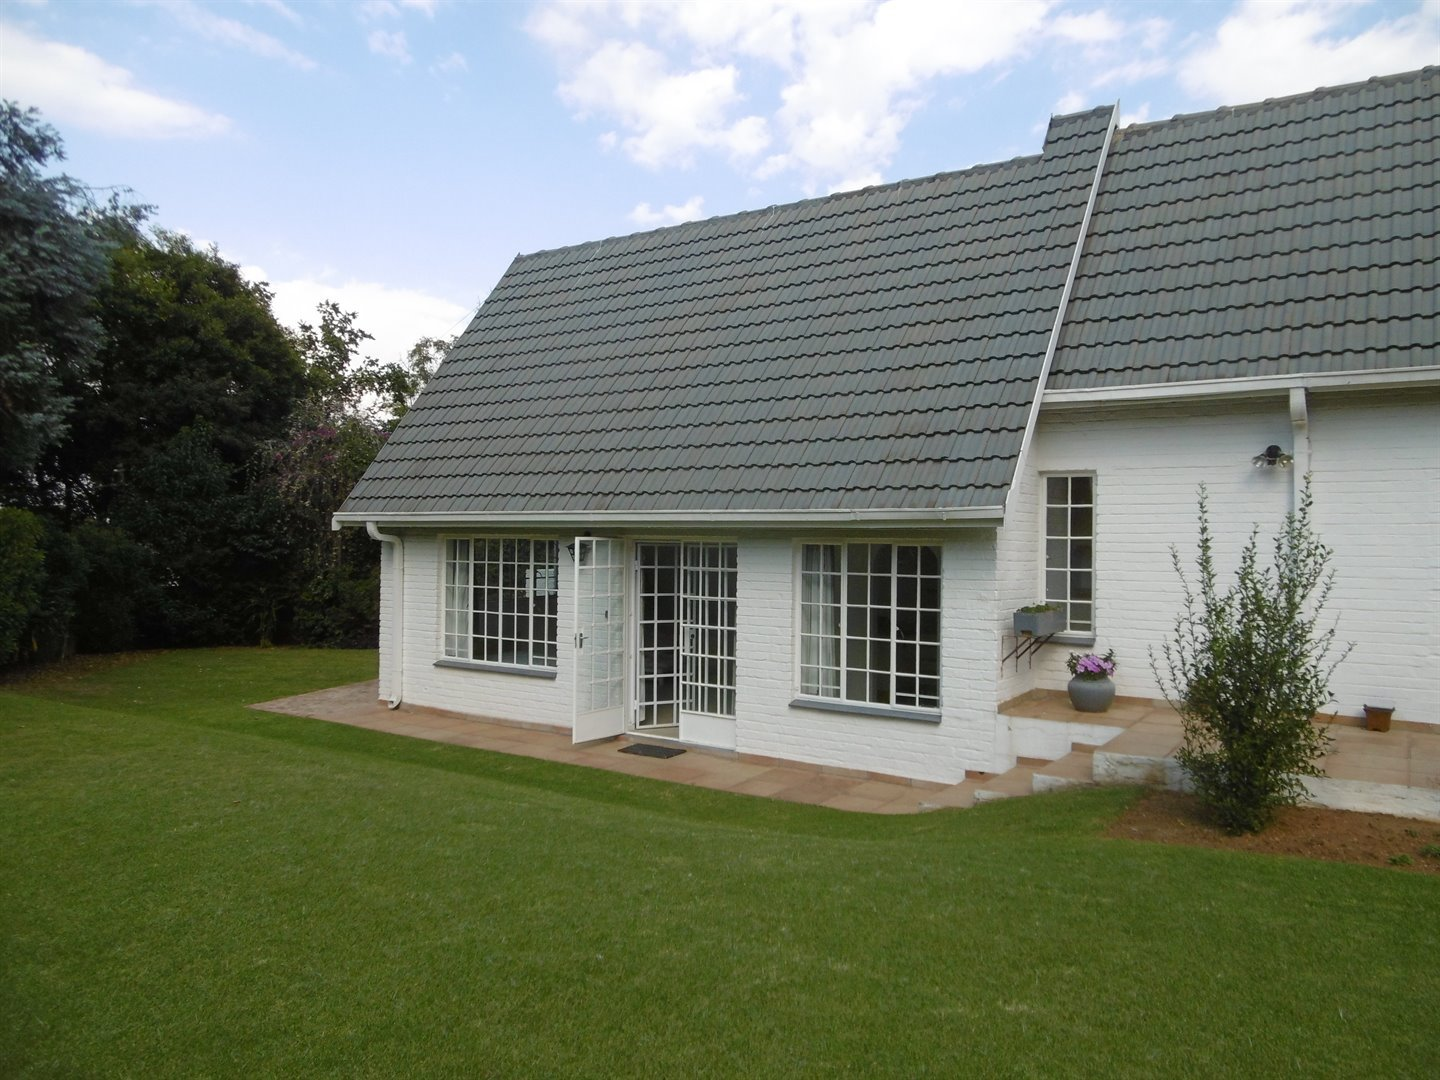 Bryanston & Ext property for sale. Ref No: 13482413. Picture no 5